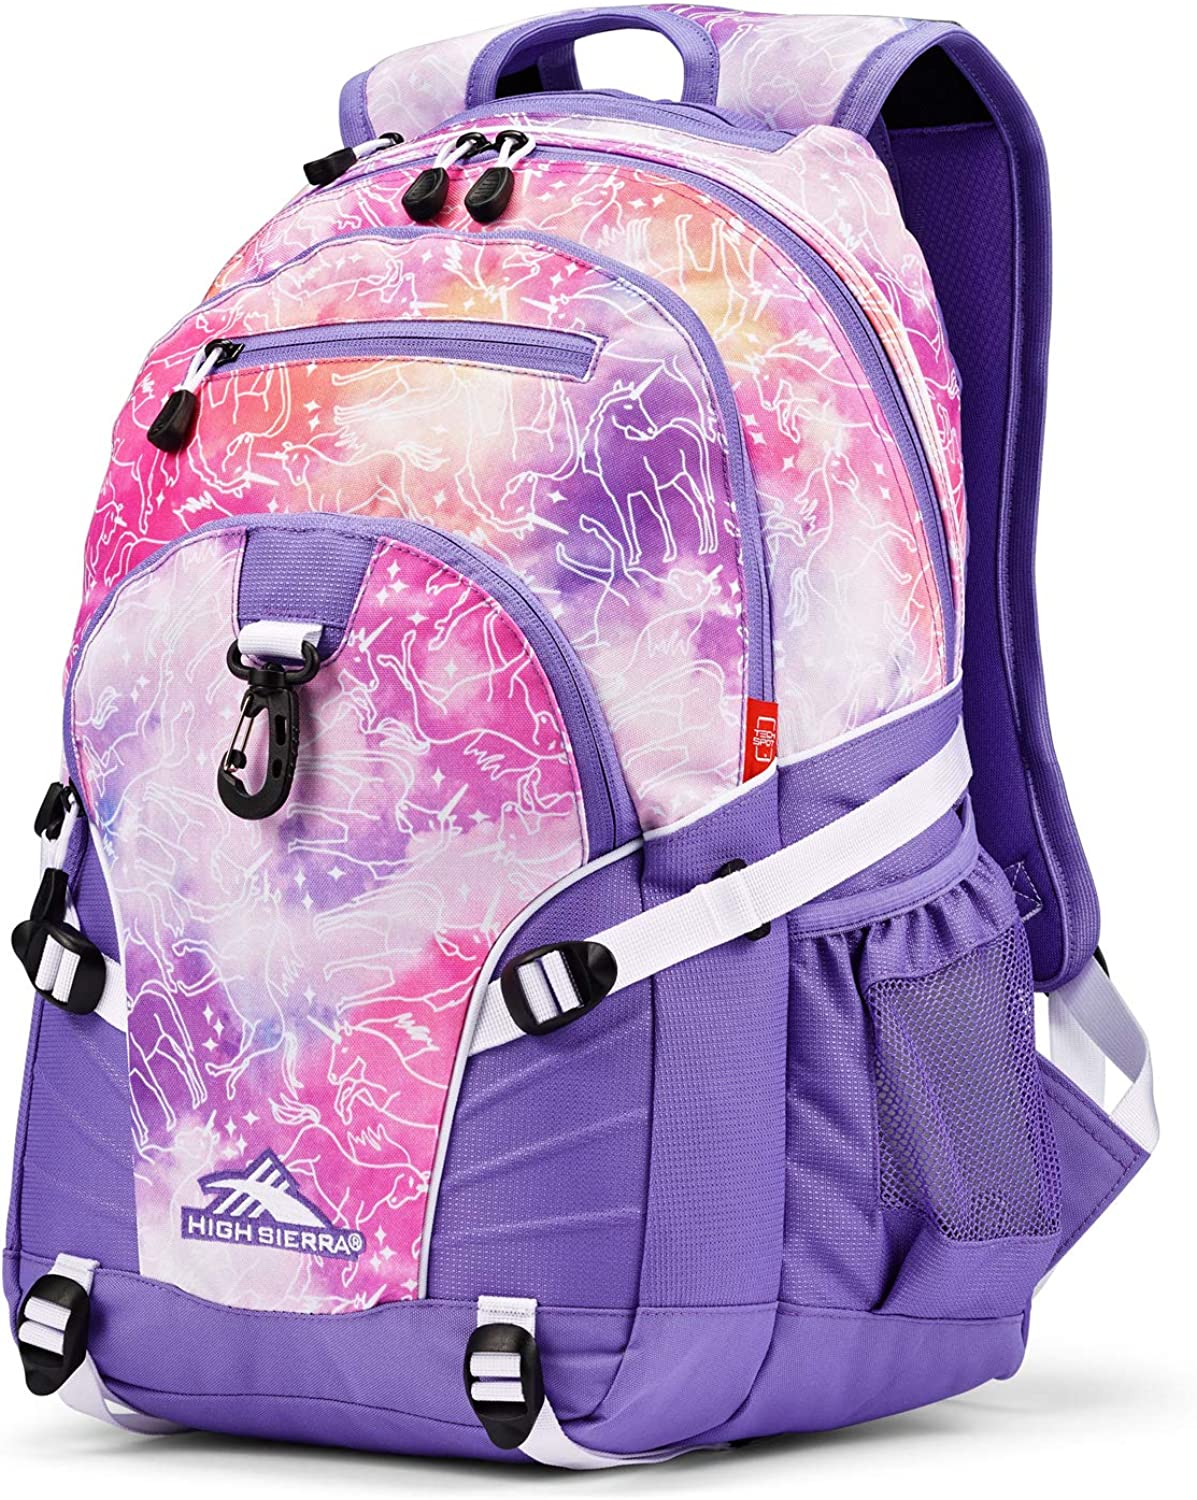 Top 7 Laptop Backpack Purple Water Bottle Holder